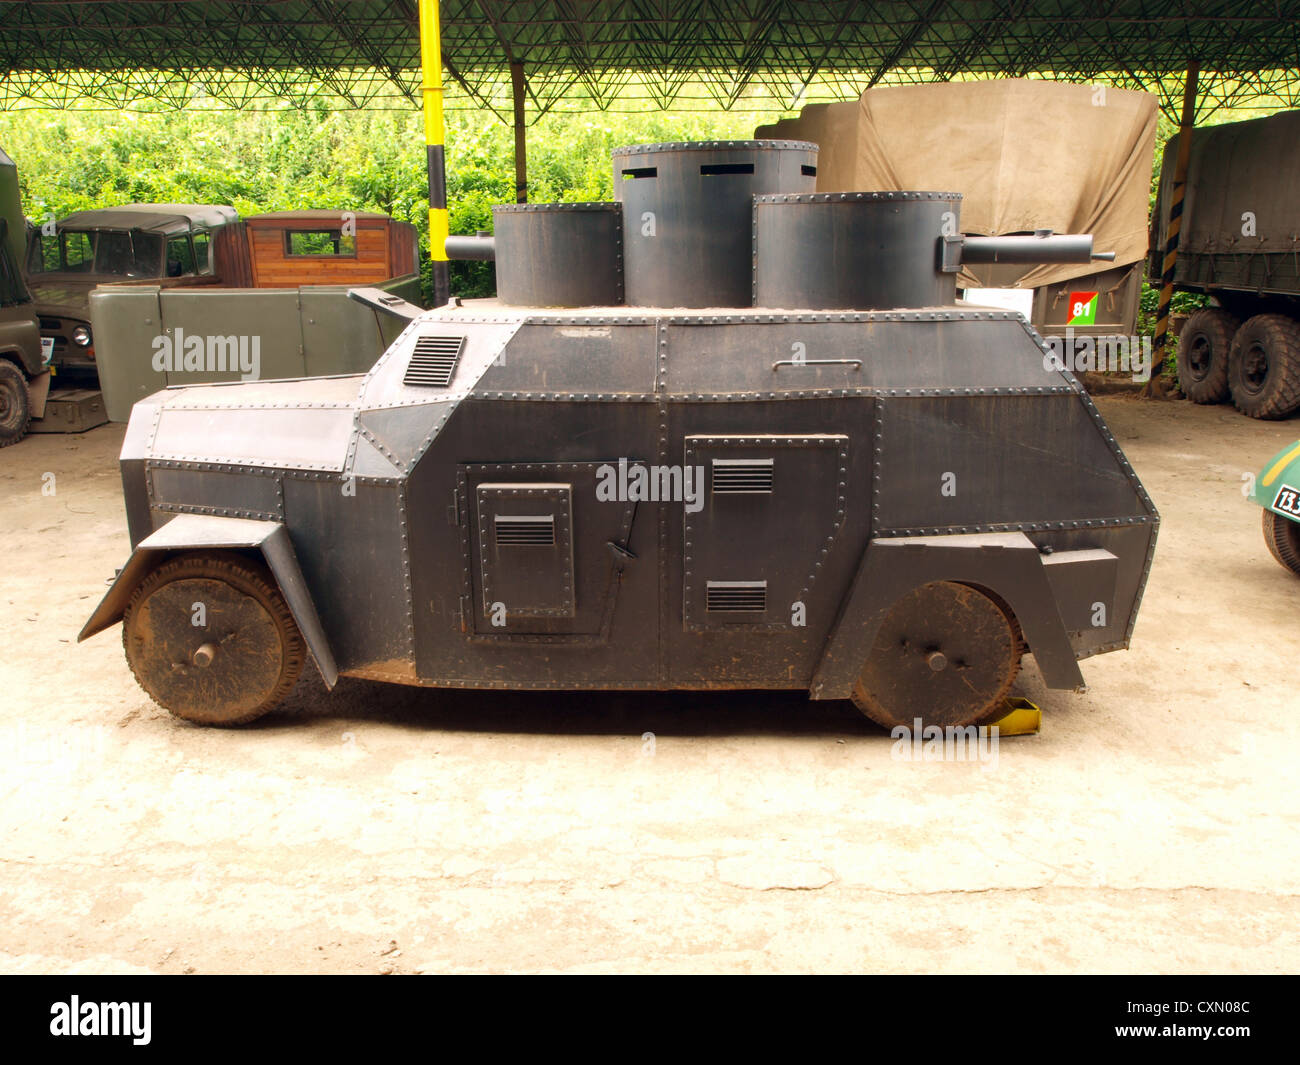 Old pre WW2 armored car - Stock Image